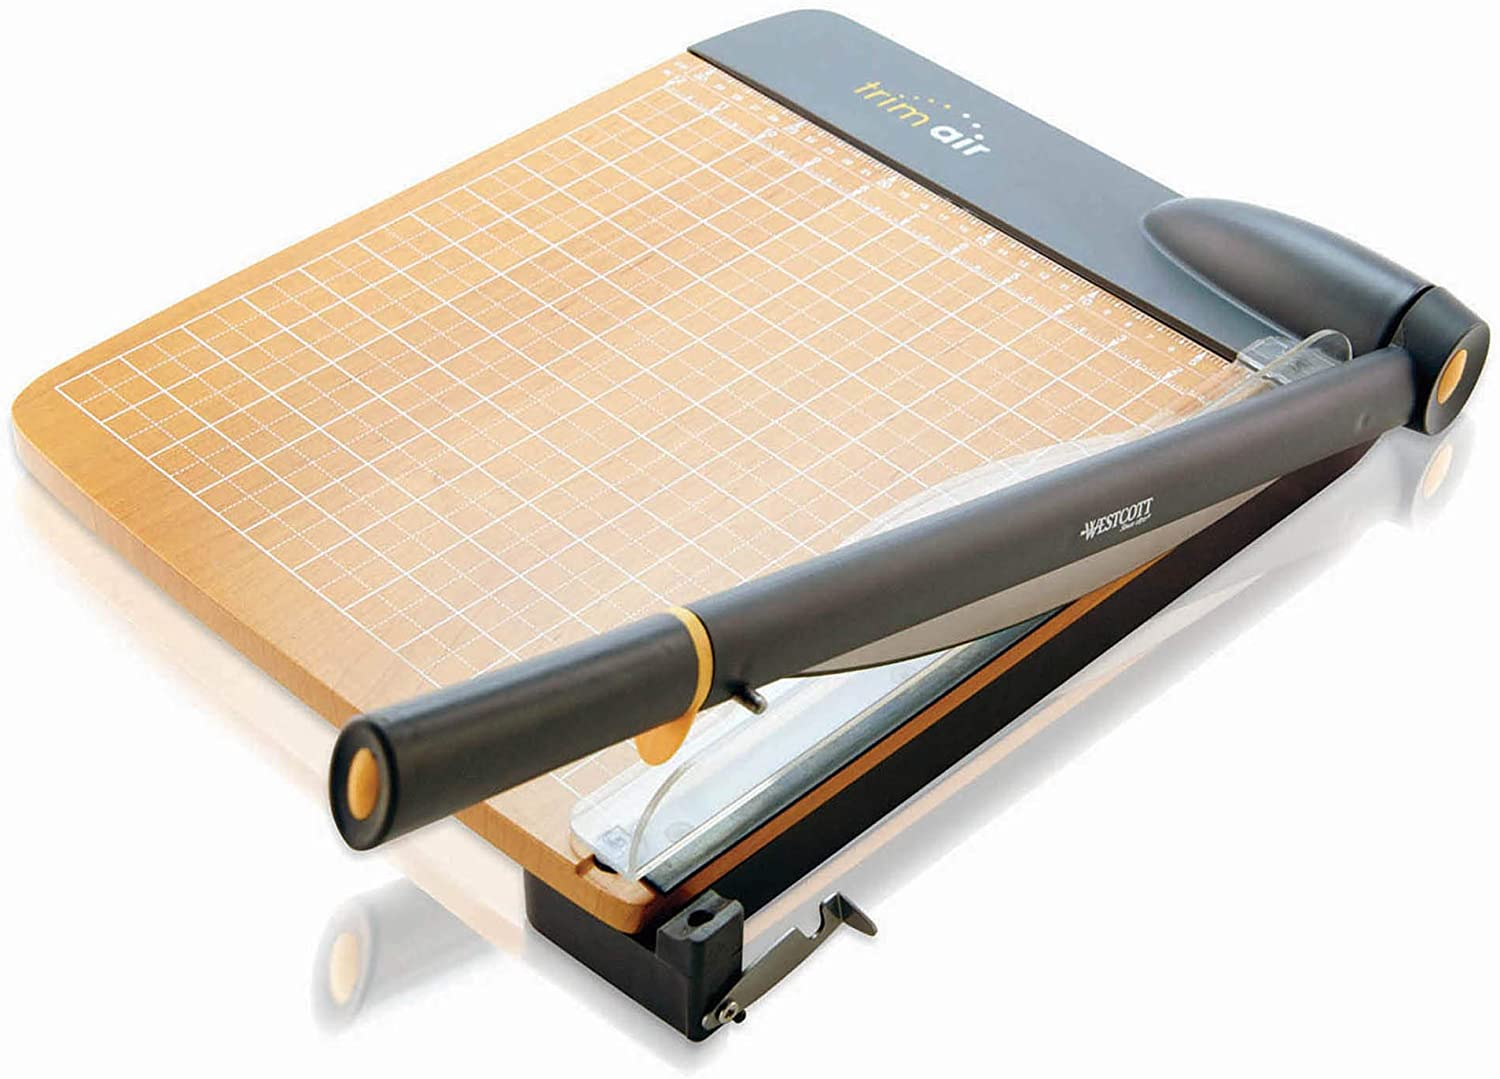 WESTCOTT TRIMAIR TITANIUM WOOD 12-INCH GUILLOTINE PAPER TRIMMER WITH ANTI-MICROBIAL PROTECTION